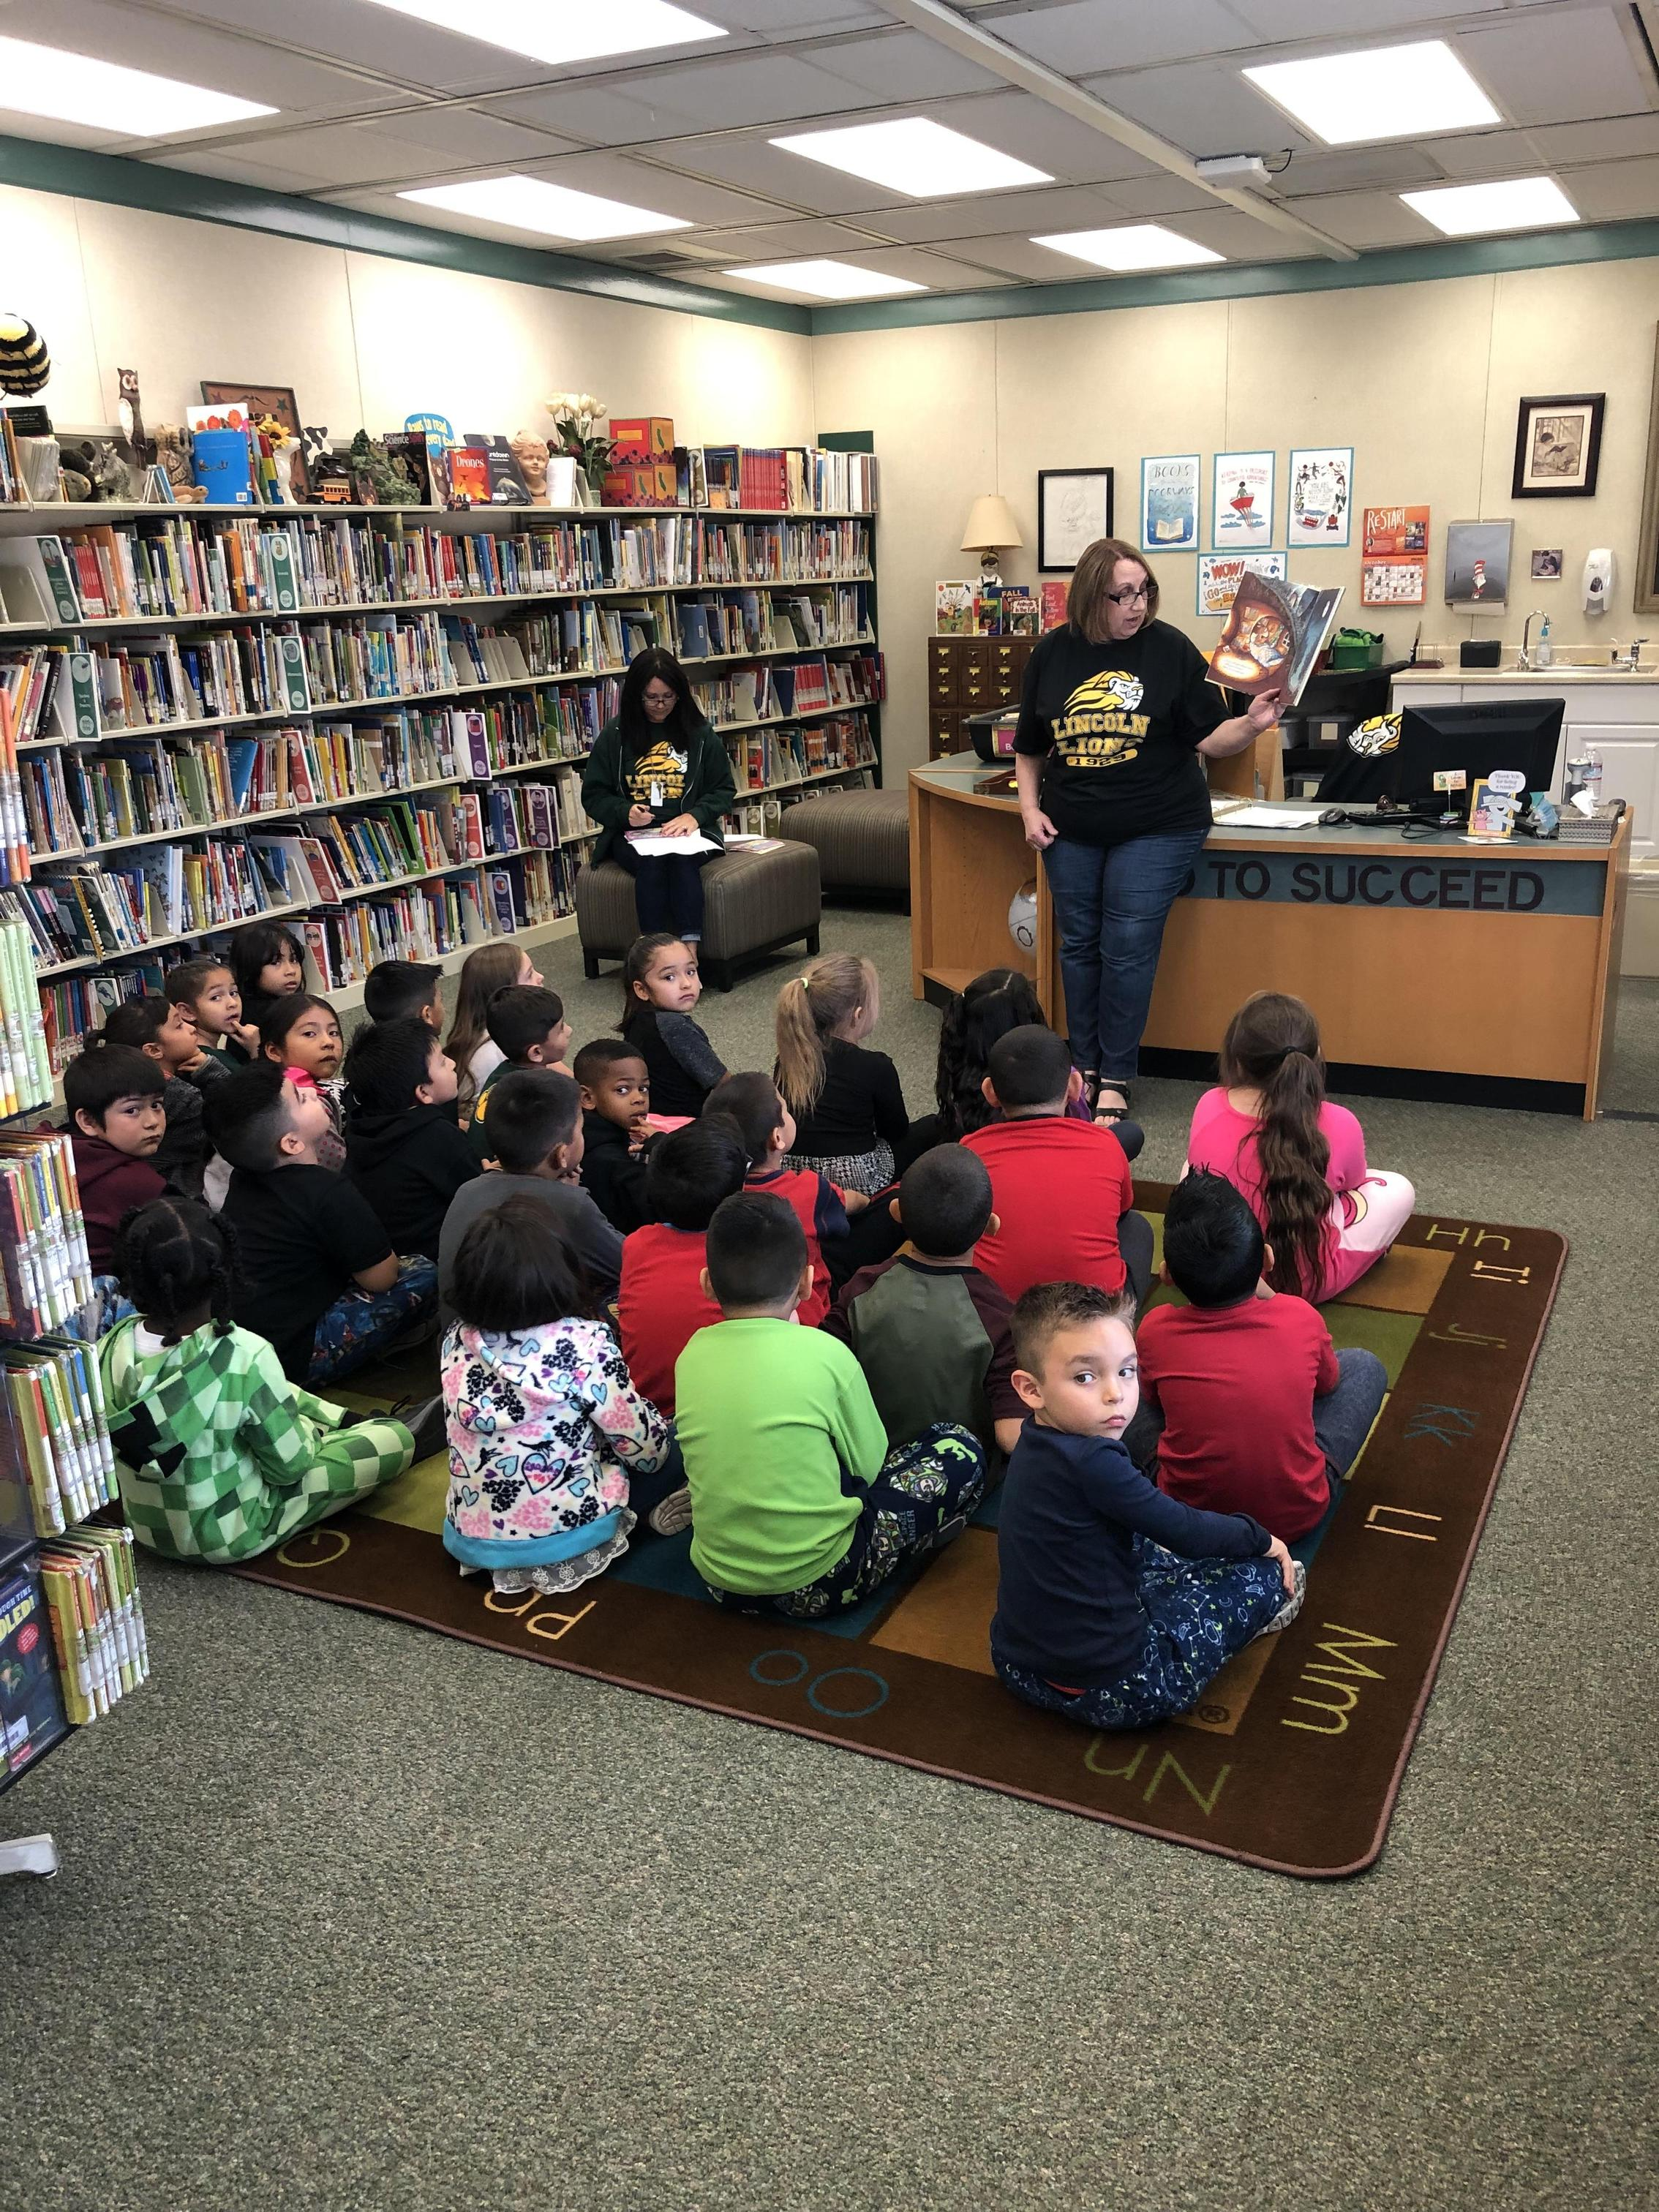 Librarian reading story